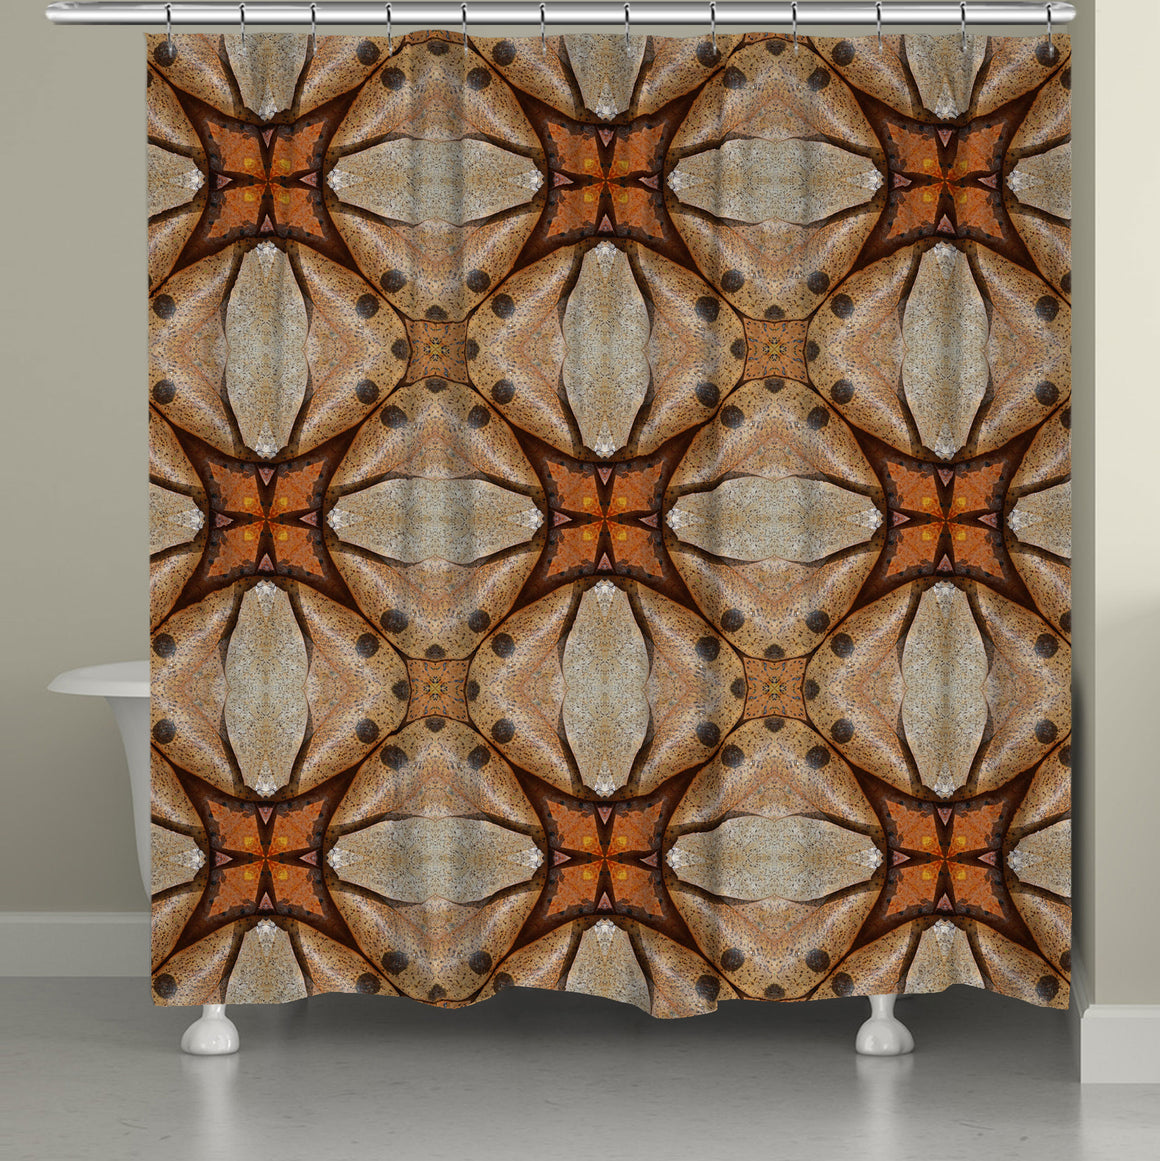 Terra Cotta Magnolia Leaves Shower Curtain